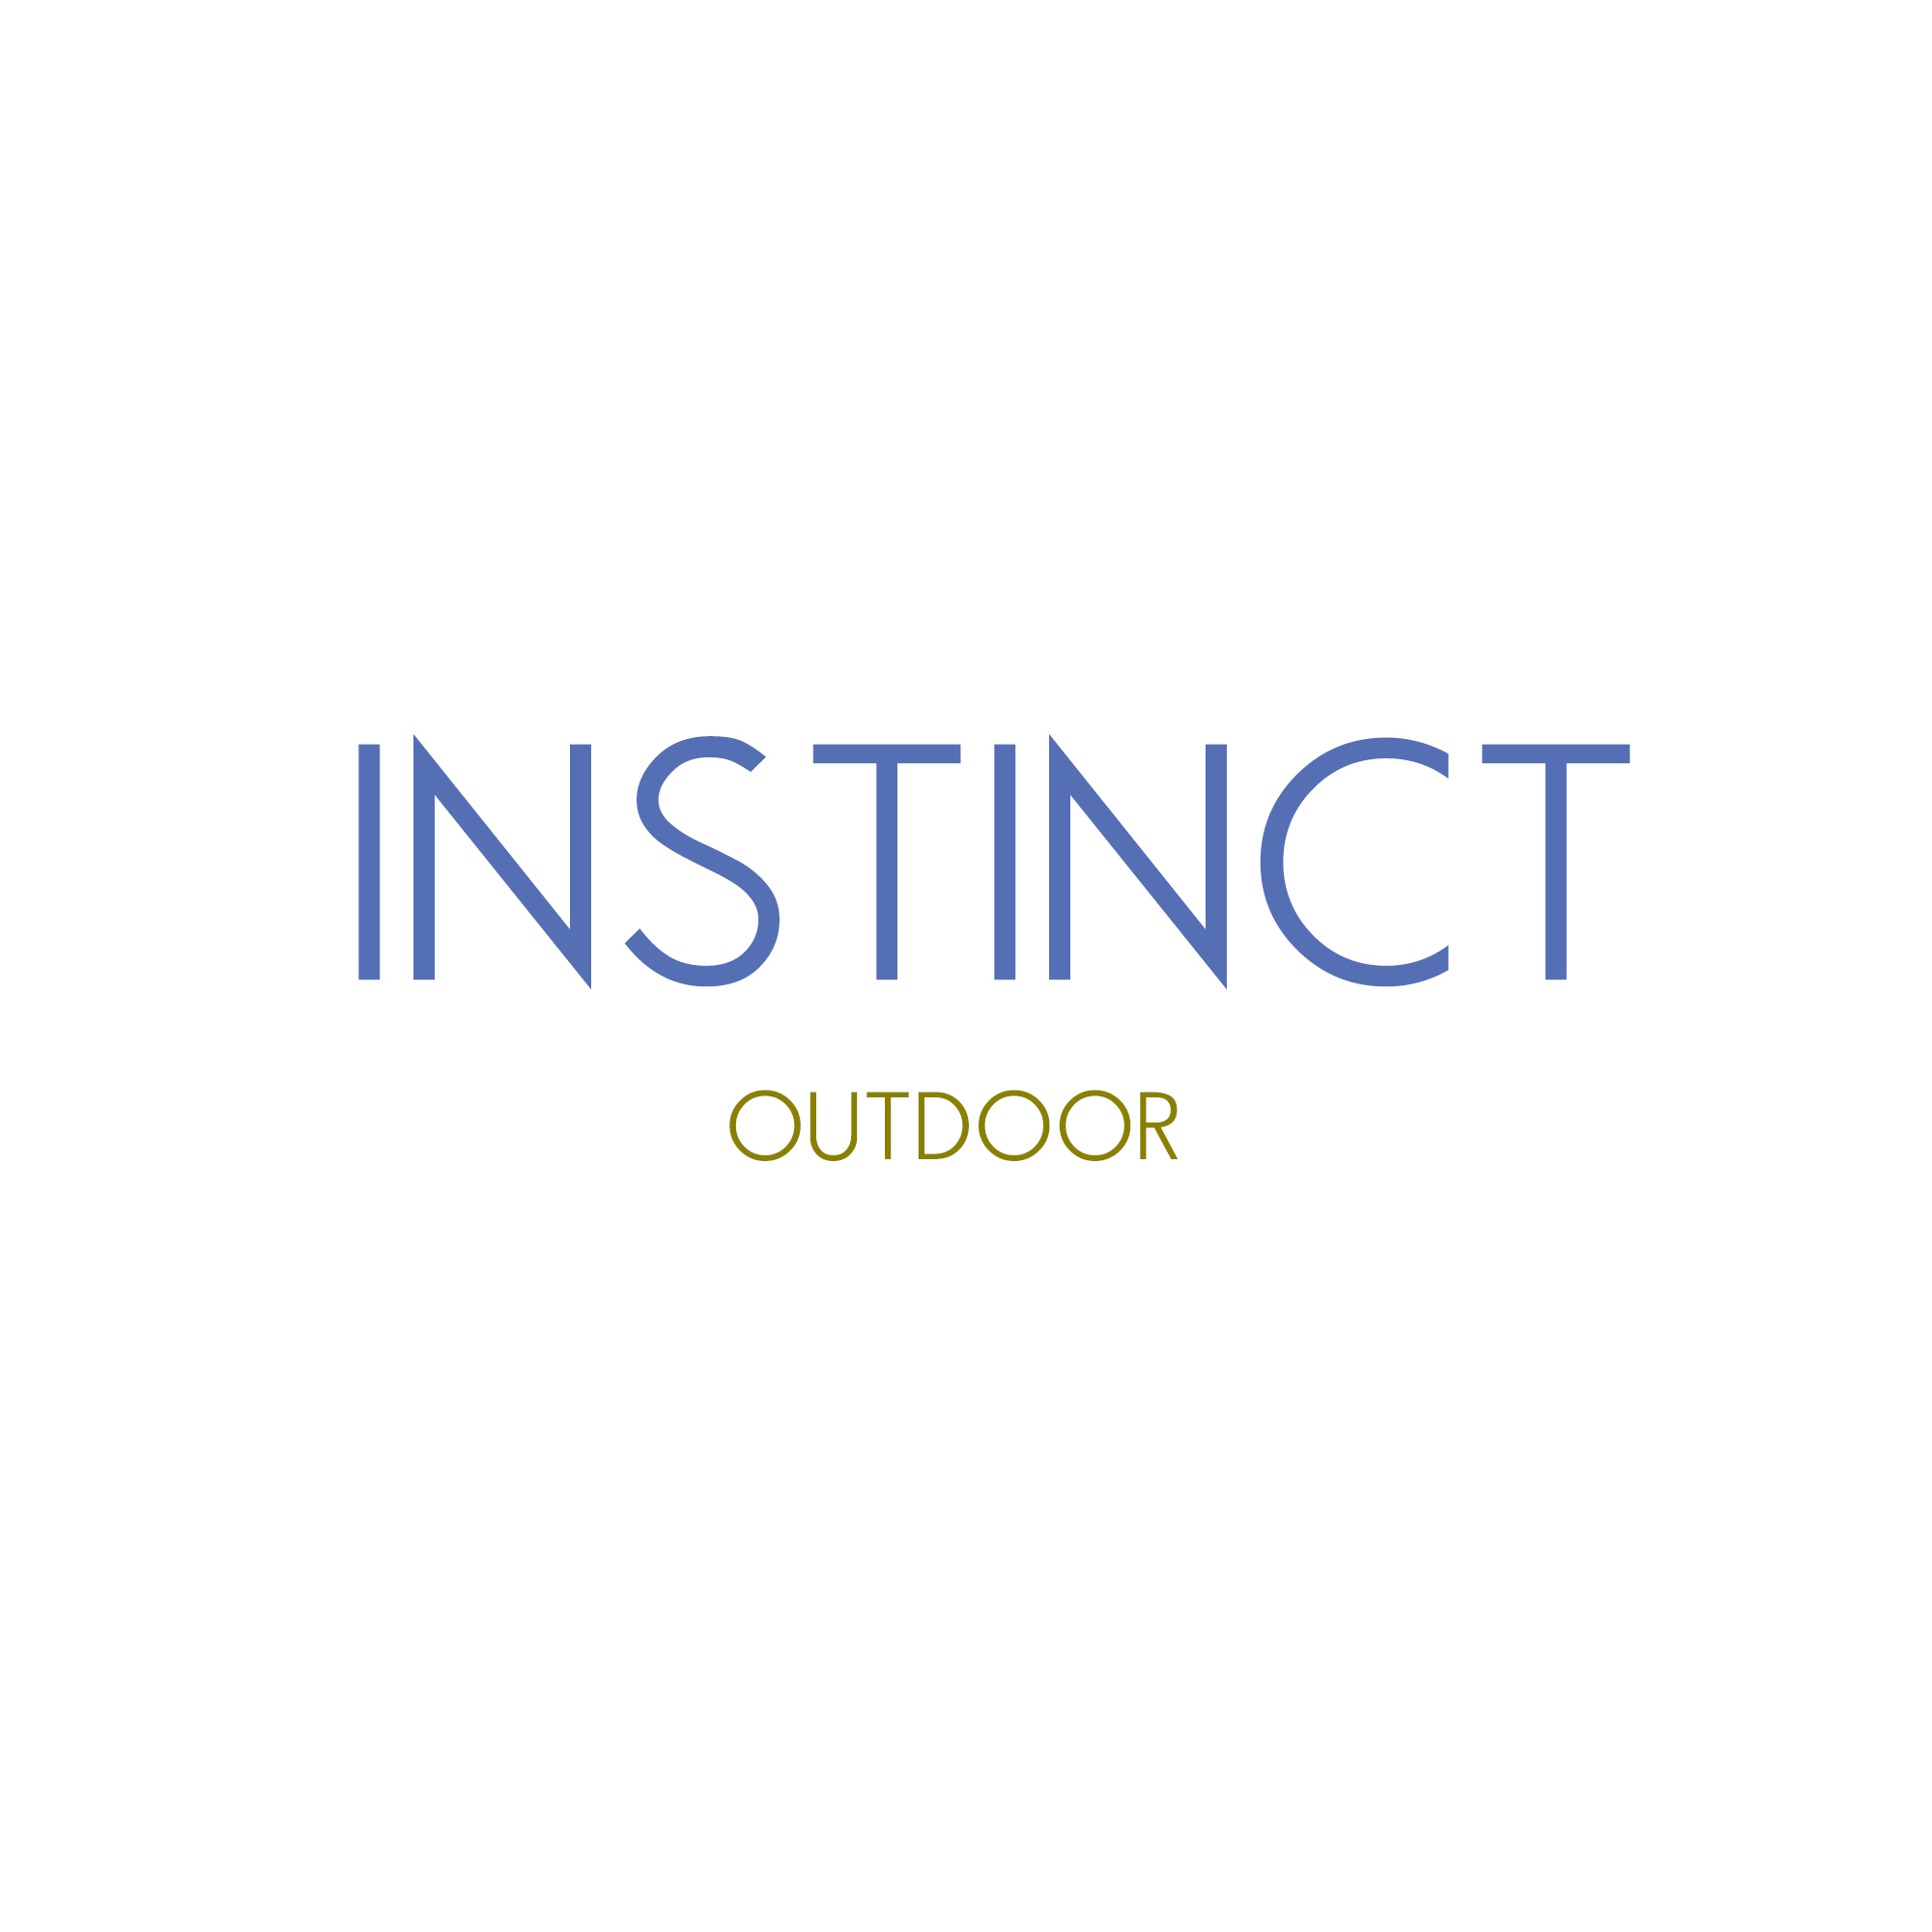 Wuyi Instinct Outdoor Products Co.,Ltd